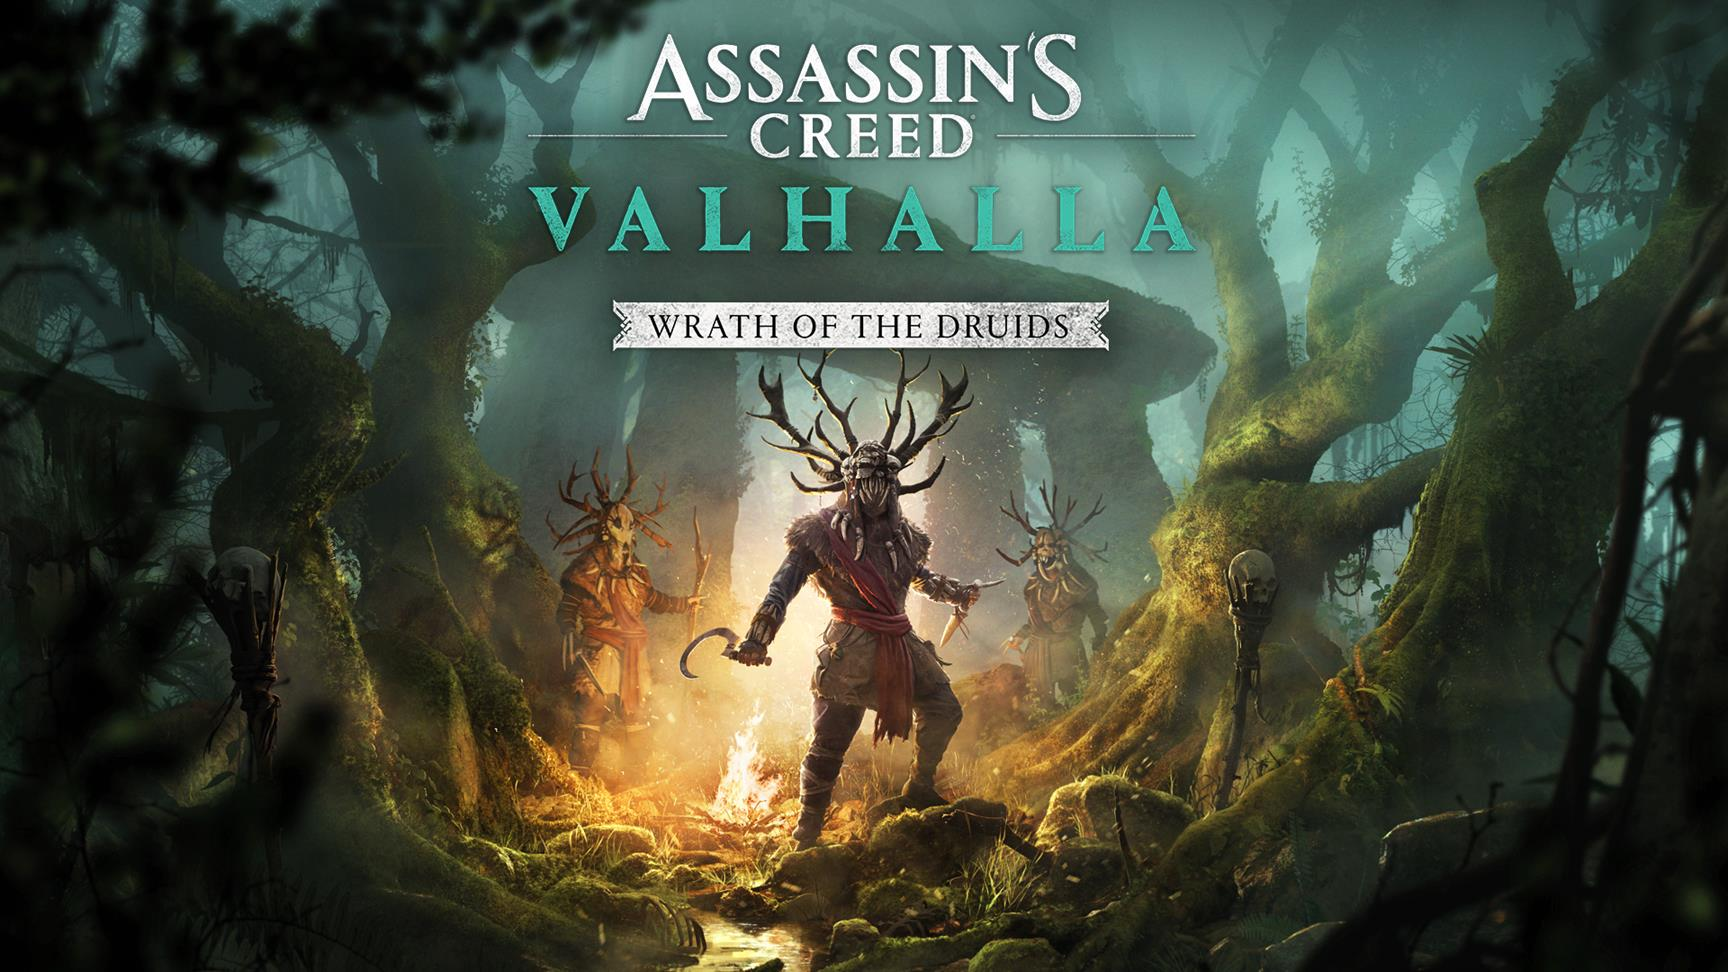 Assassin's Creed Valhalla post-launch content revealed: seasons, story DLC, new skills and more thumbnail